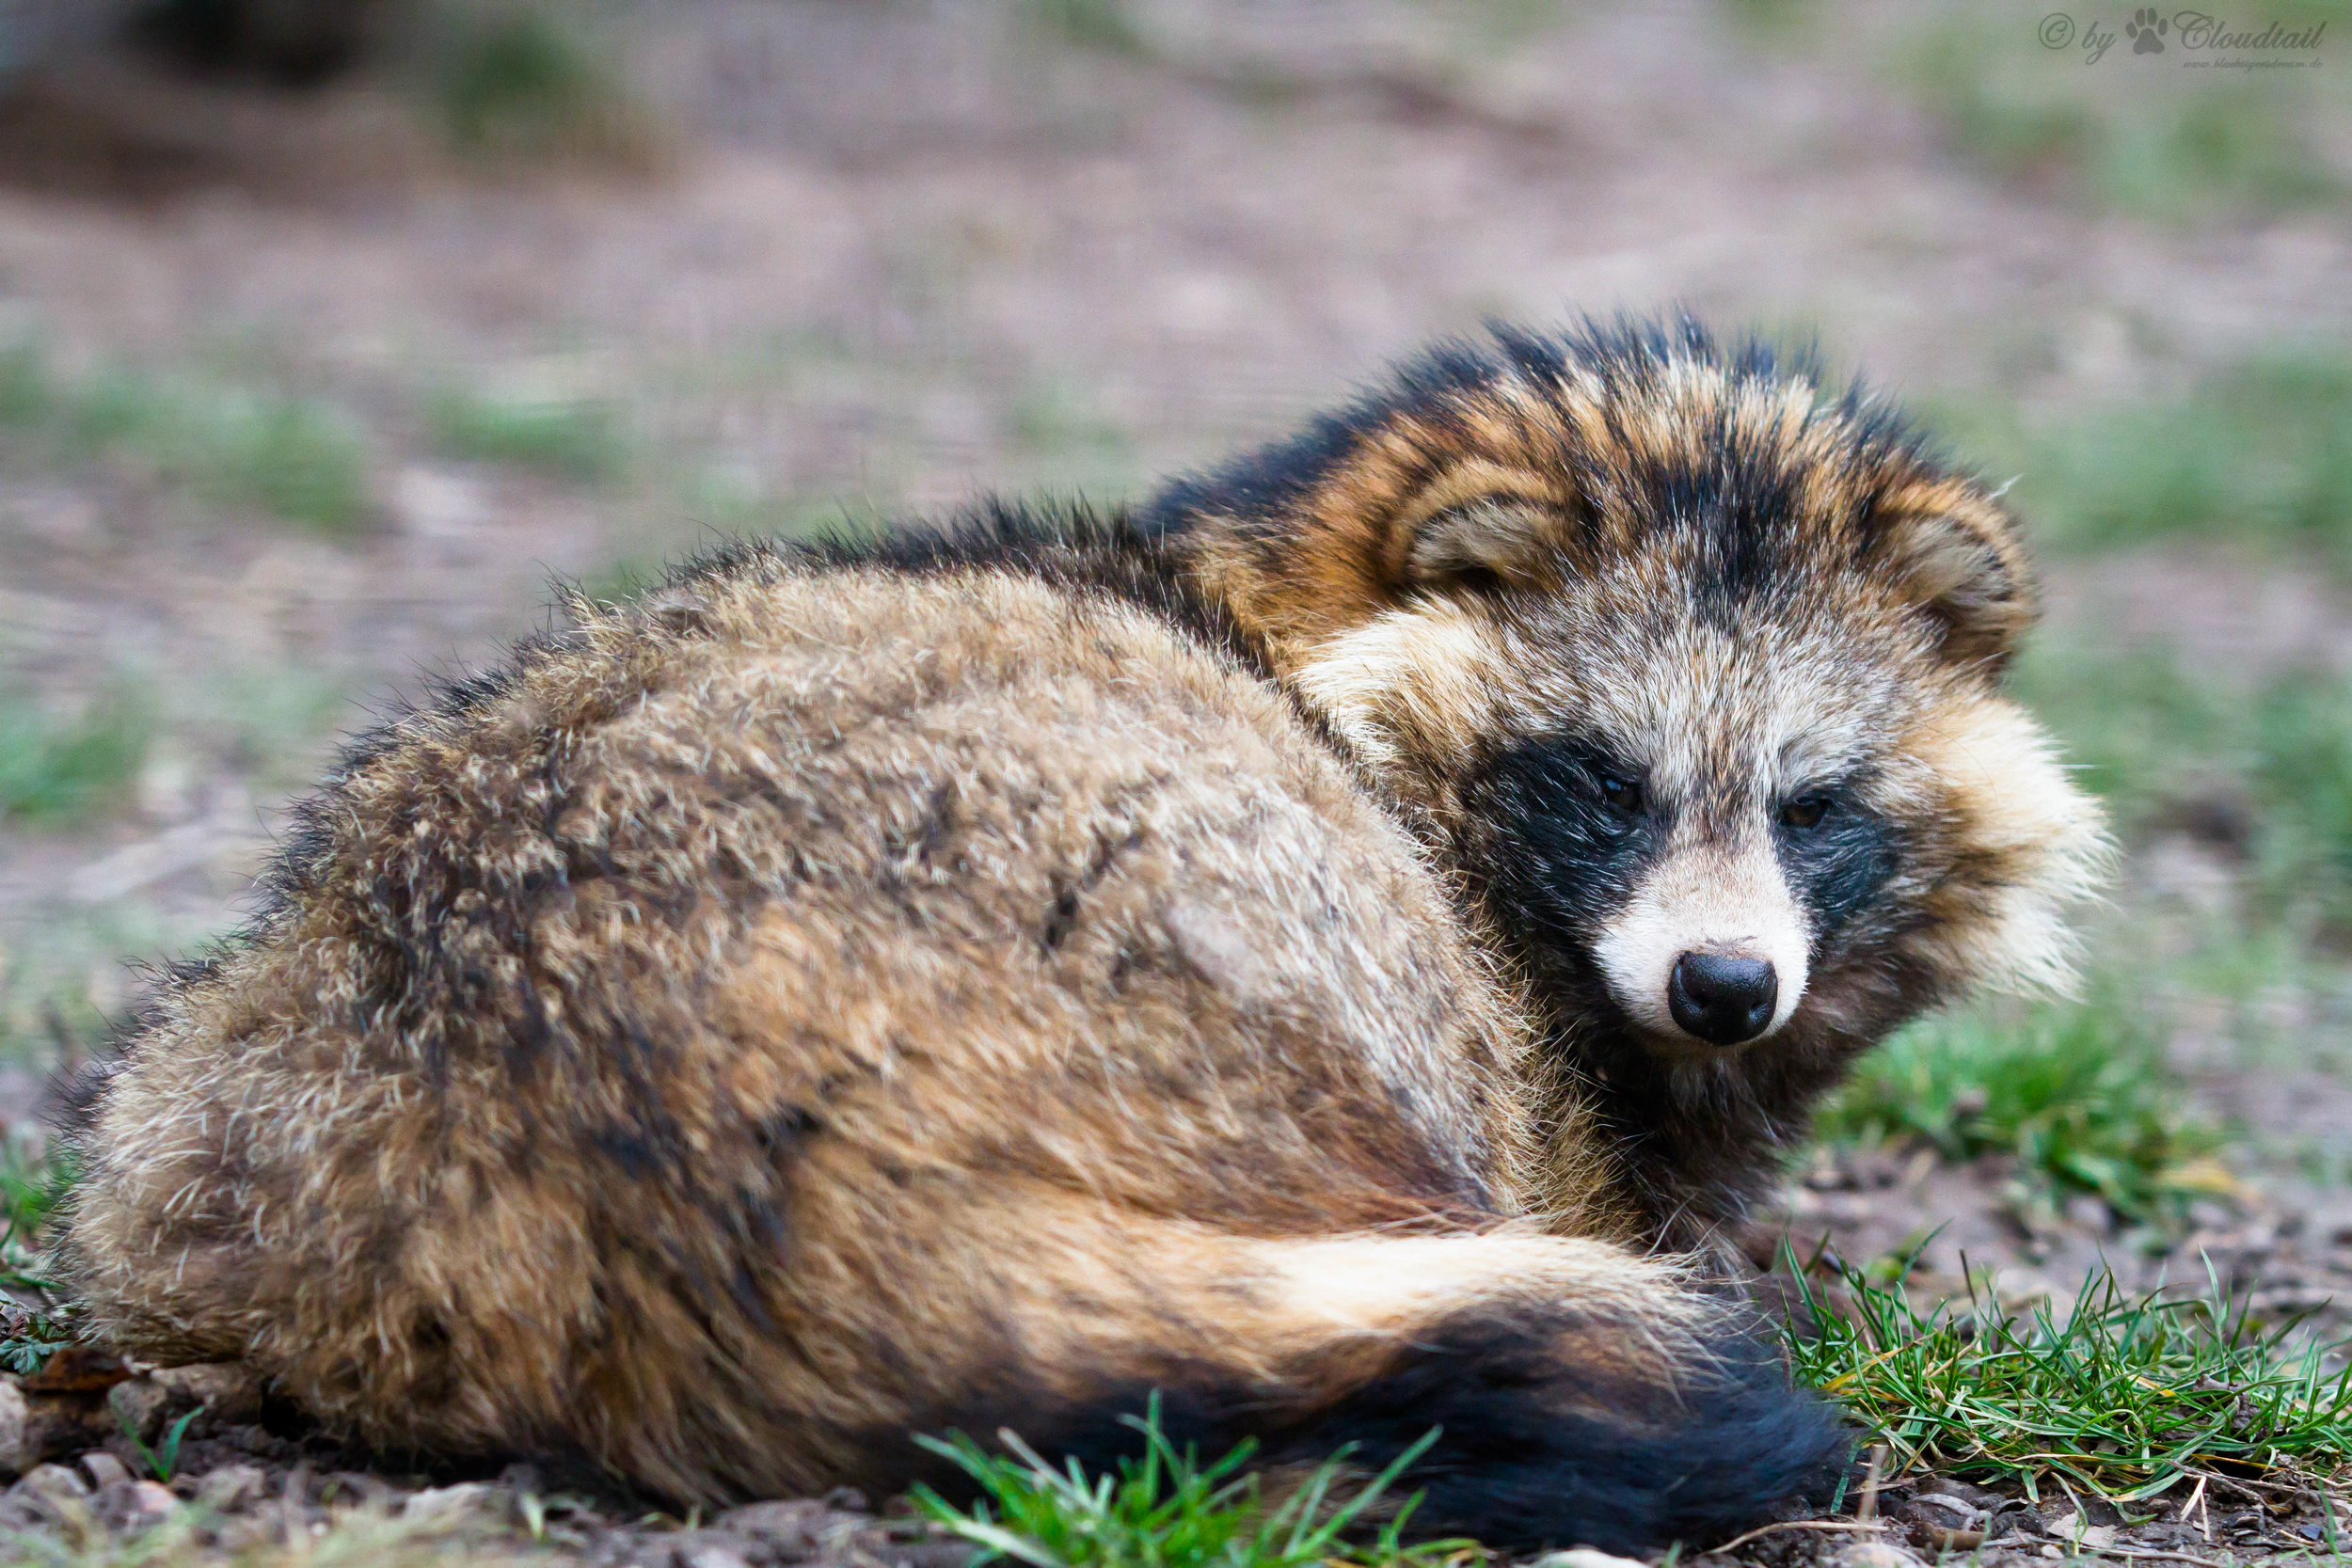 Raccoon dog. Photo by Cloudtail the Snow Leopard.